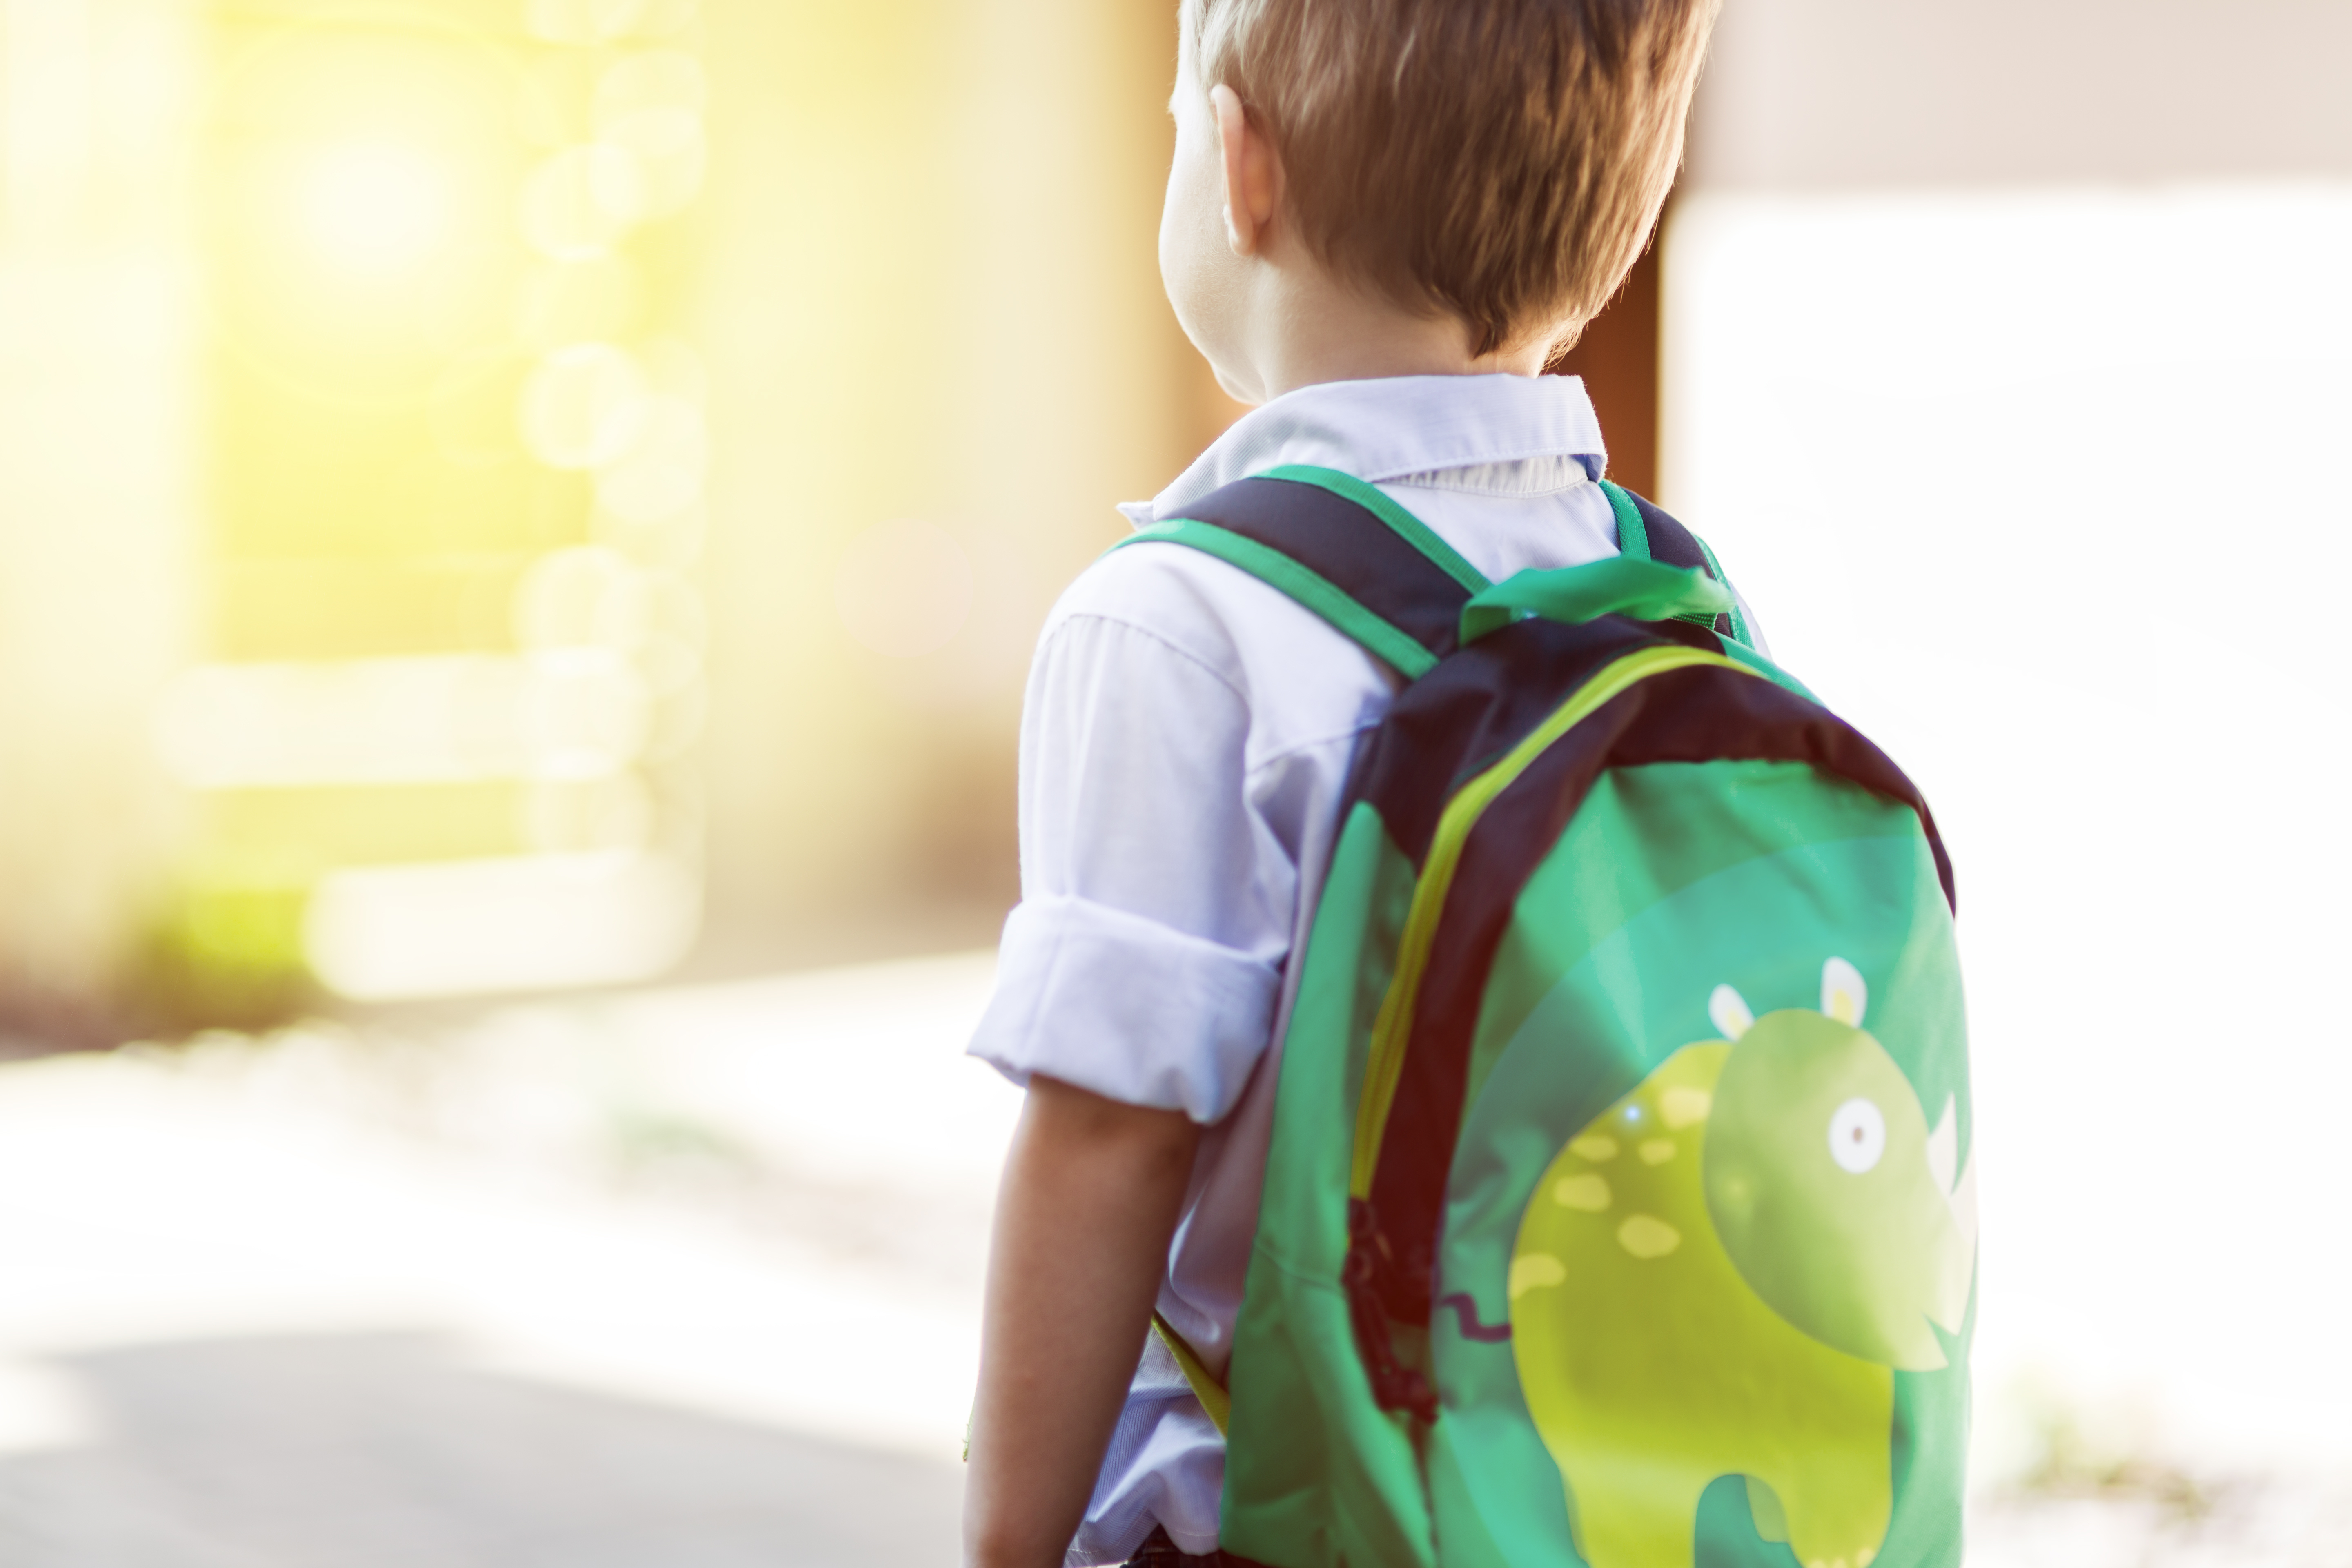 Dear First-Time Kindergarten Mom, Your Baby Is Ready www.herviewfromhome.com